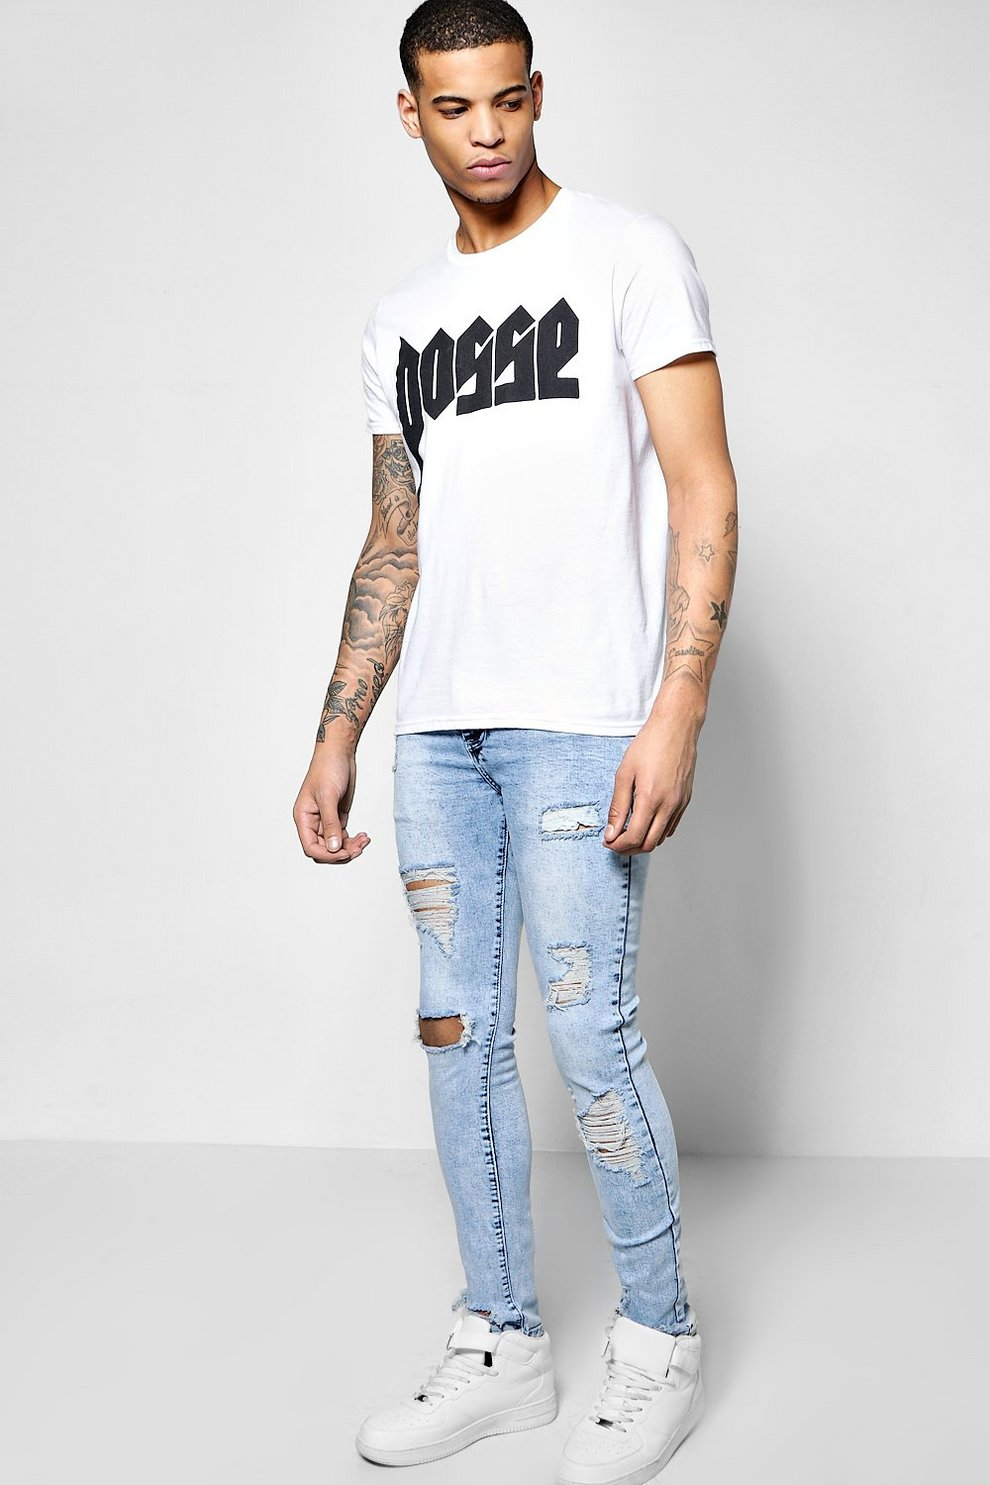 Really Cheap Shoes Online Clearance Websites Boohoo Skinny Fit Stretch Destroyed Jeans With Credit Card For Sale iv1lM5ei